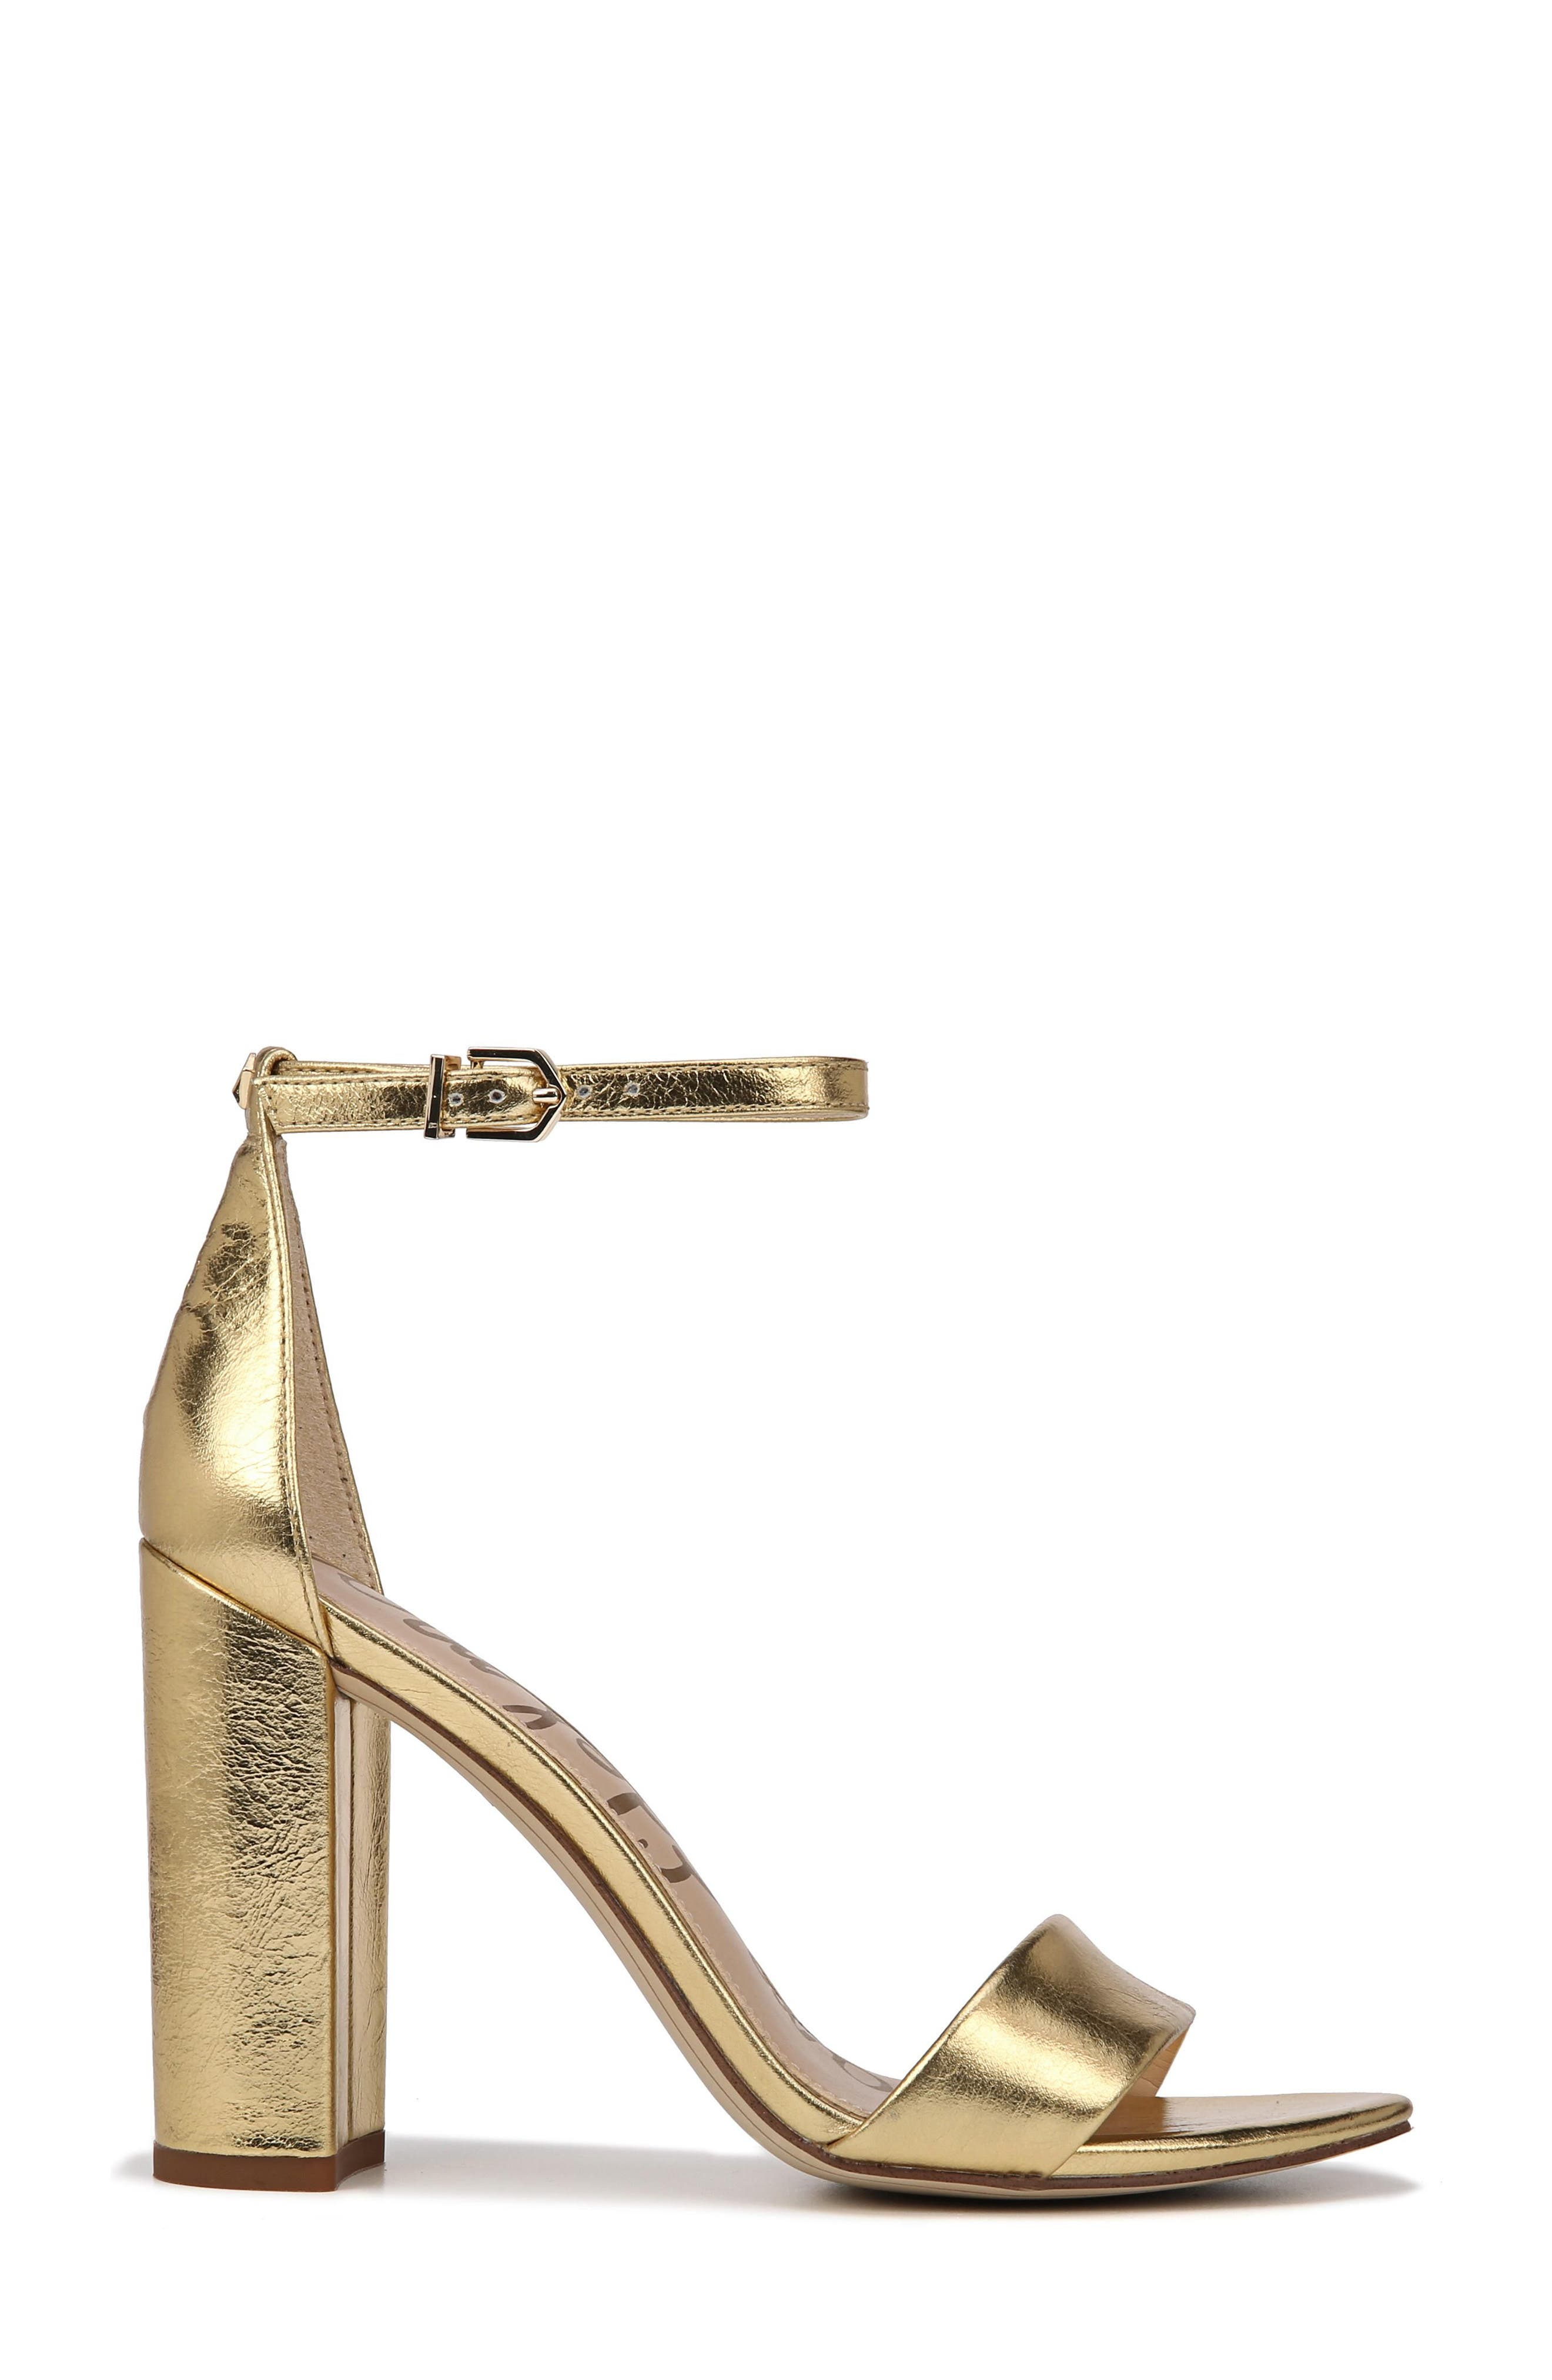 Yaro Ankle Strap Sandal,                             Alternate thumbnail 3, color,                             Bright Gold Leather